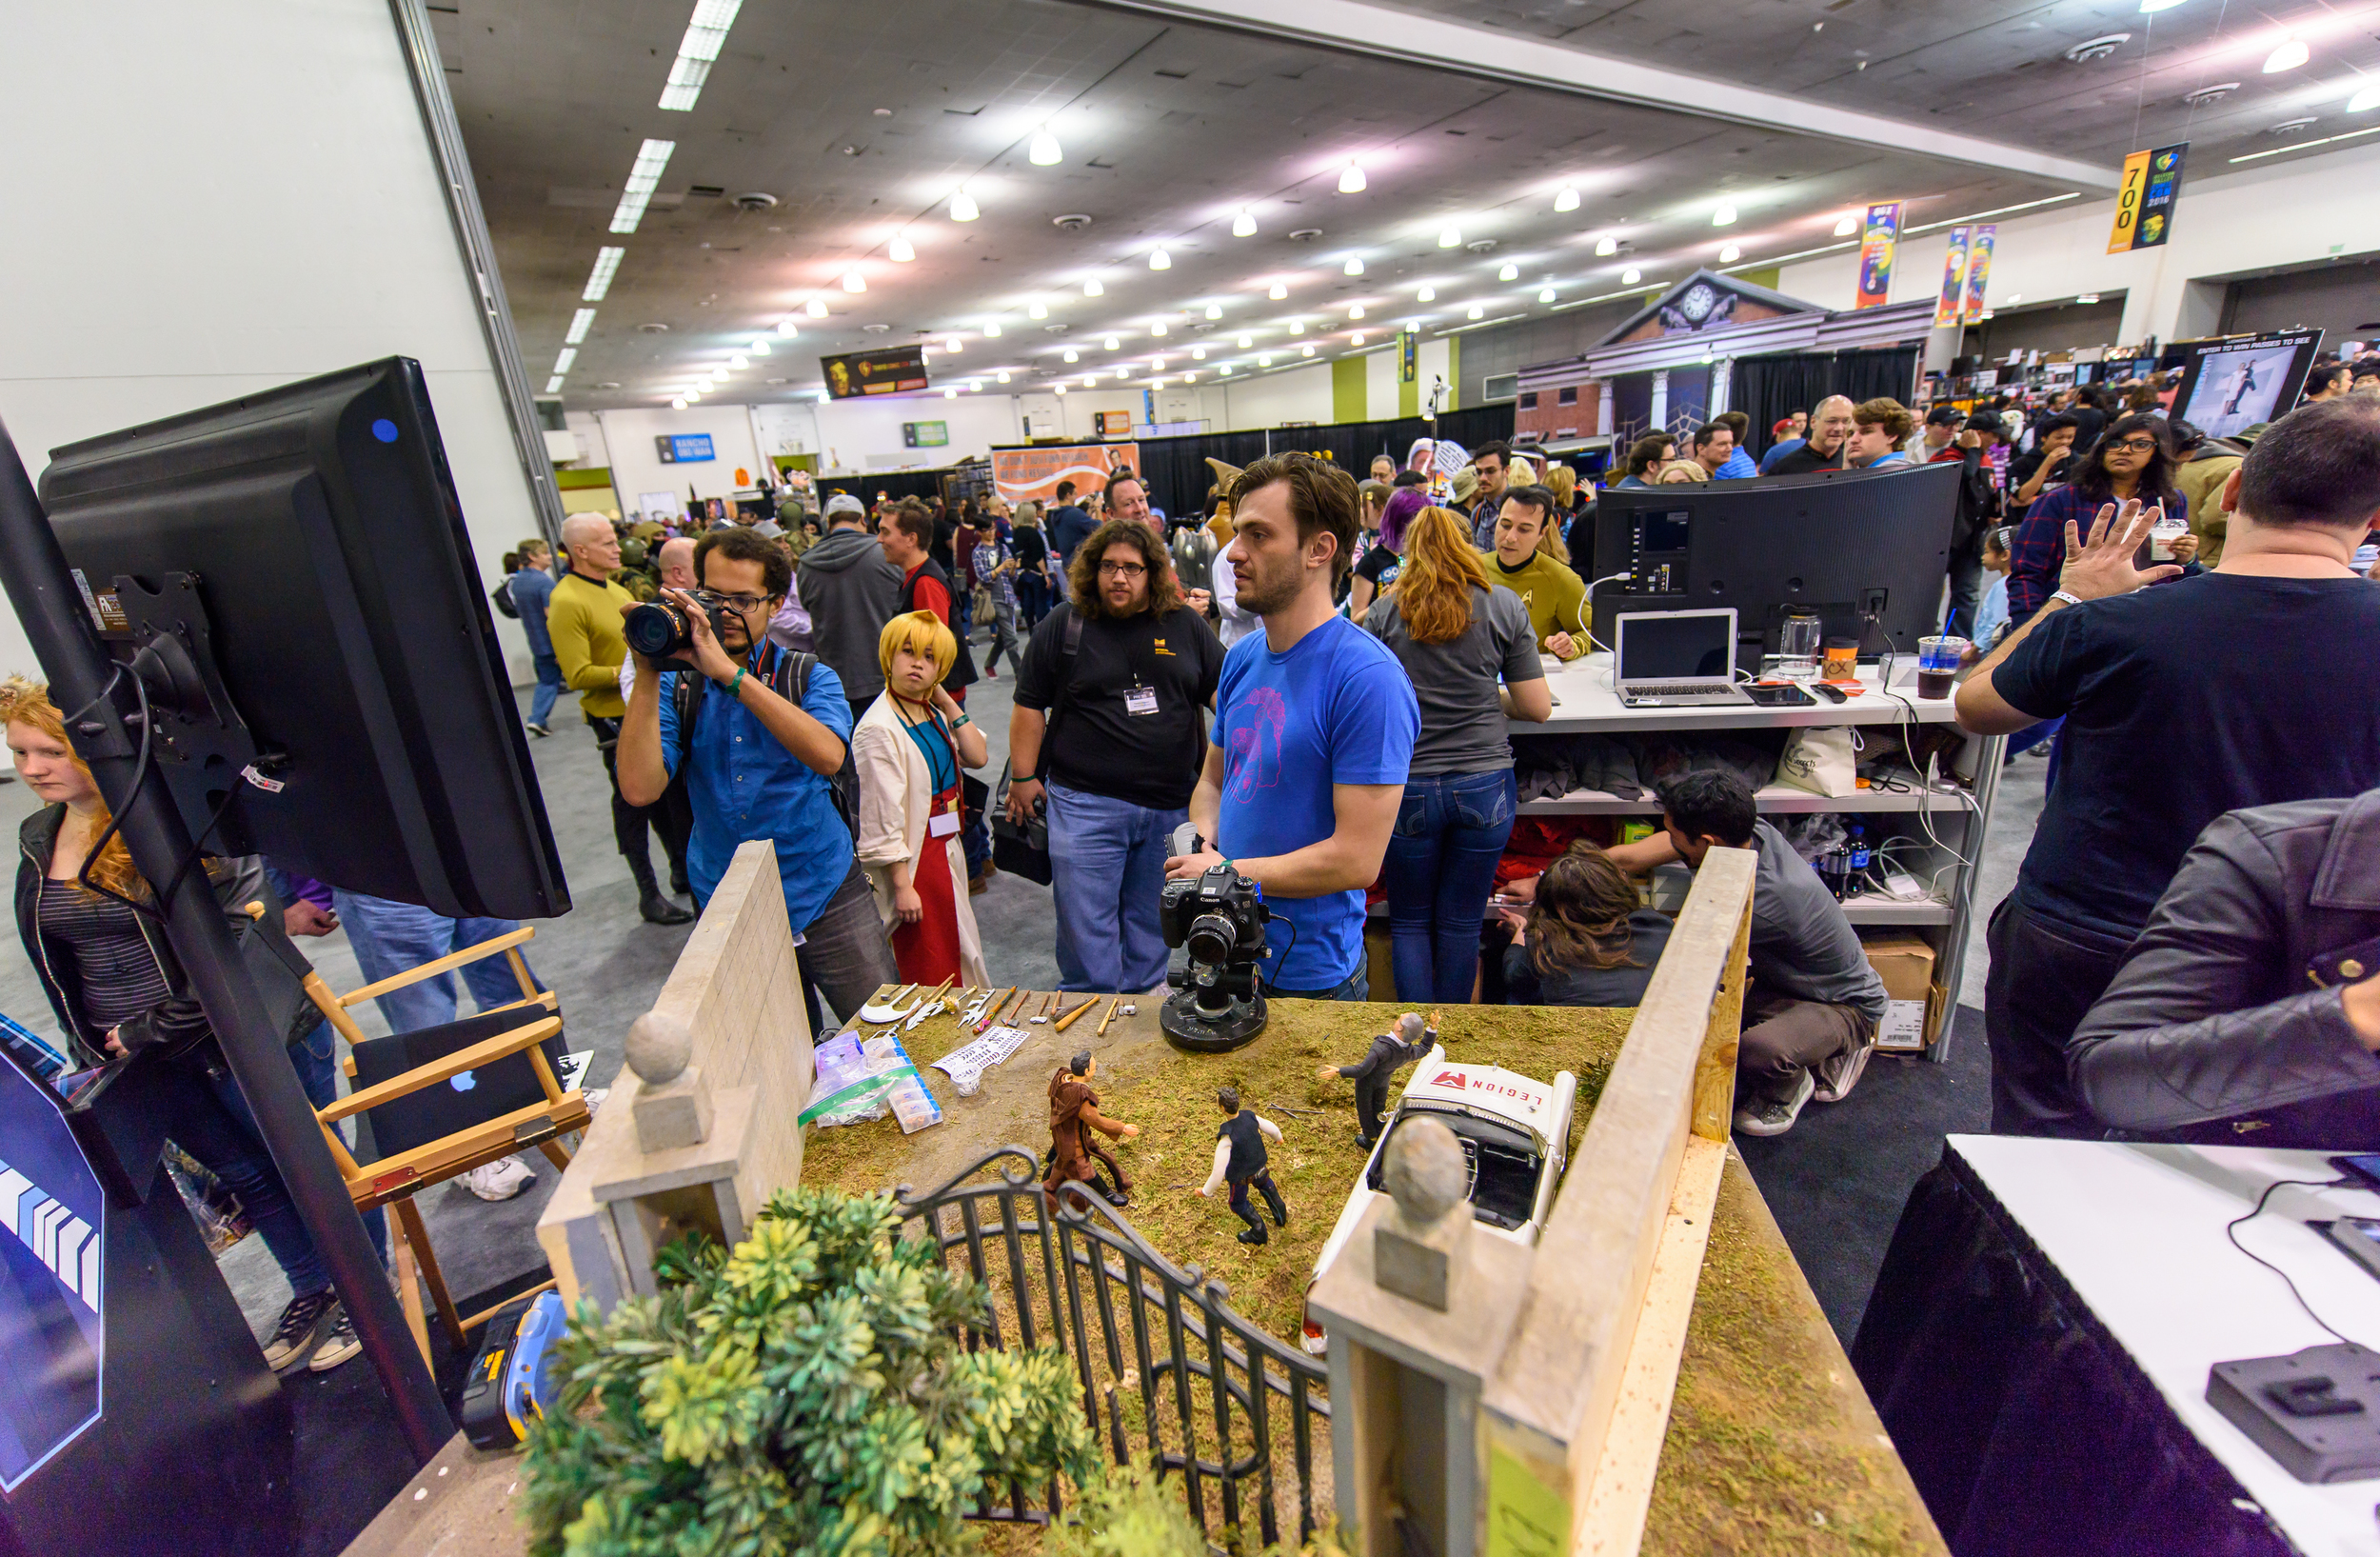 The centerpiece of the Legion M booth was Robot Chicken animator Dillon Markey, who answered questions from fans and did LIVE stop motion animation (yes, we know that's an oxymoron!)all weekend long.